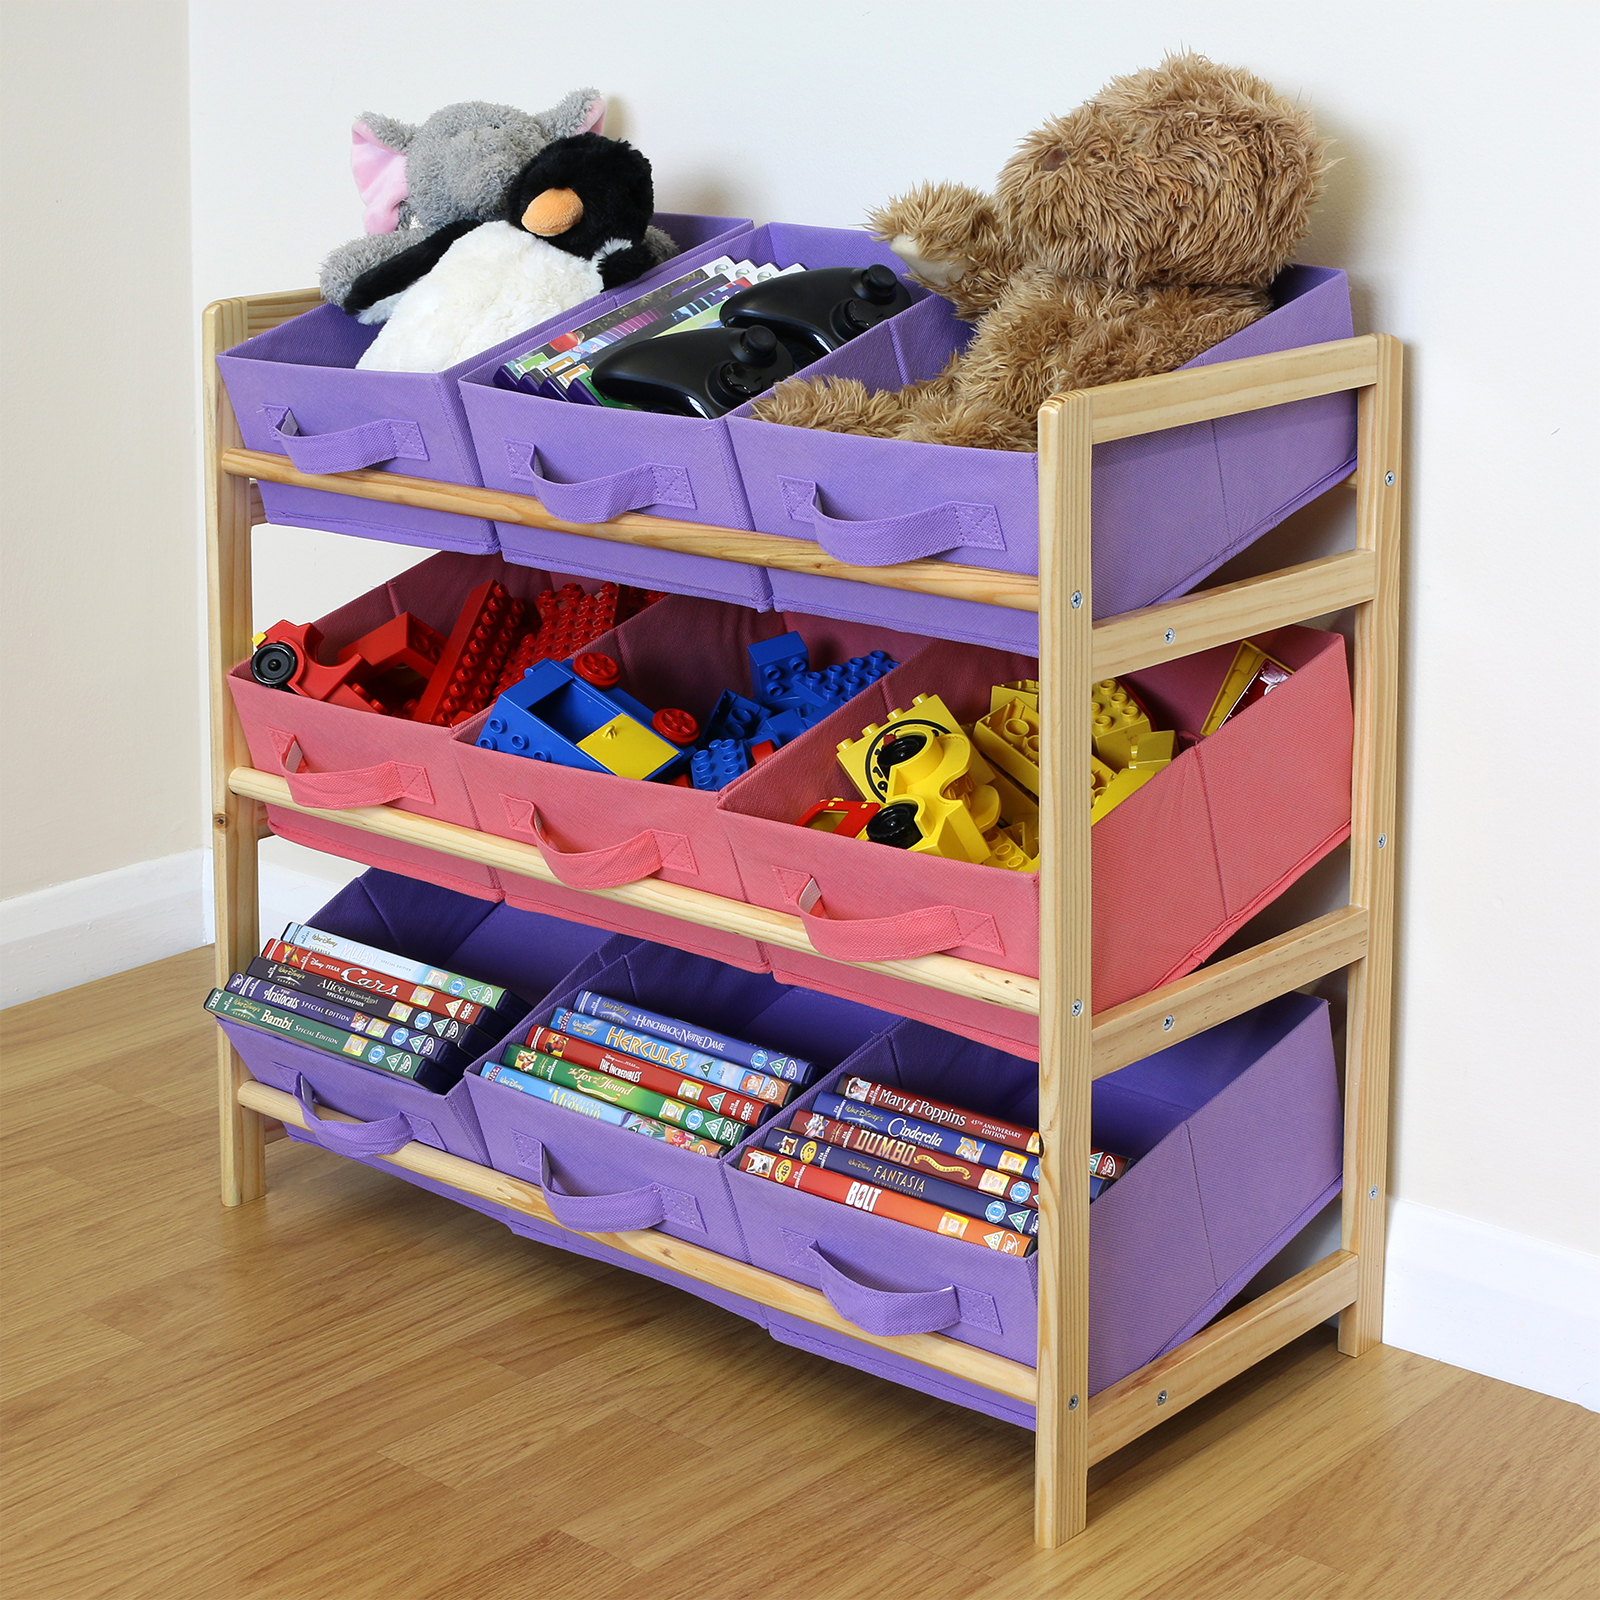 Hartleys 3 Tier Storage Shelf Unit Kids Childrens Bedroom: Purple & Pink 3 Tier Wood Toy Unit 9 Canvas Boxes/Drawers